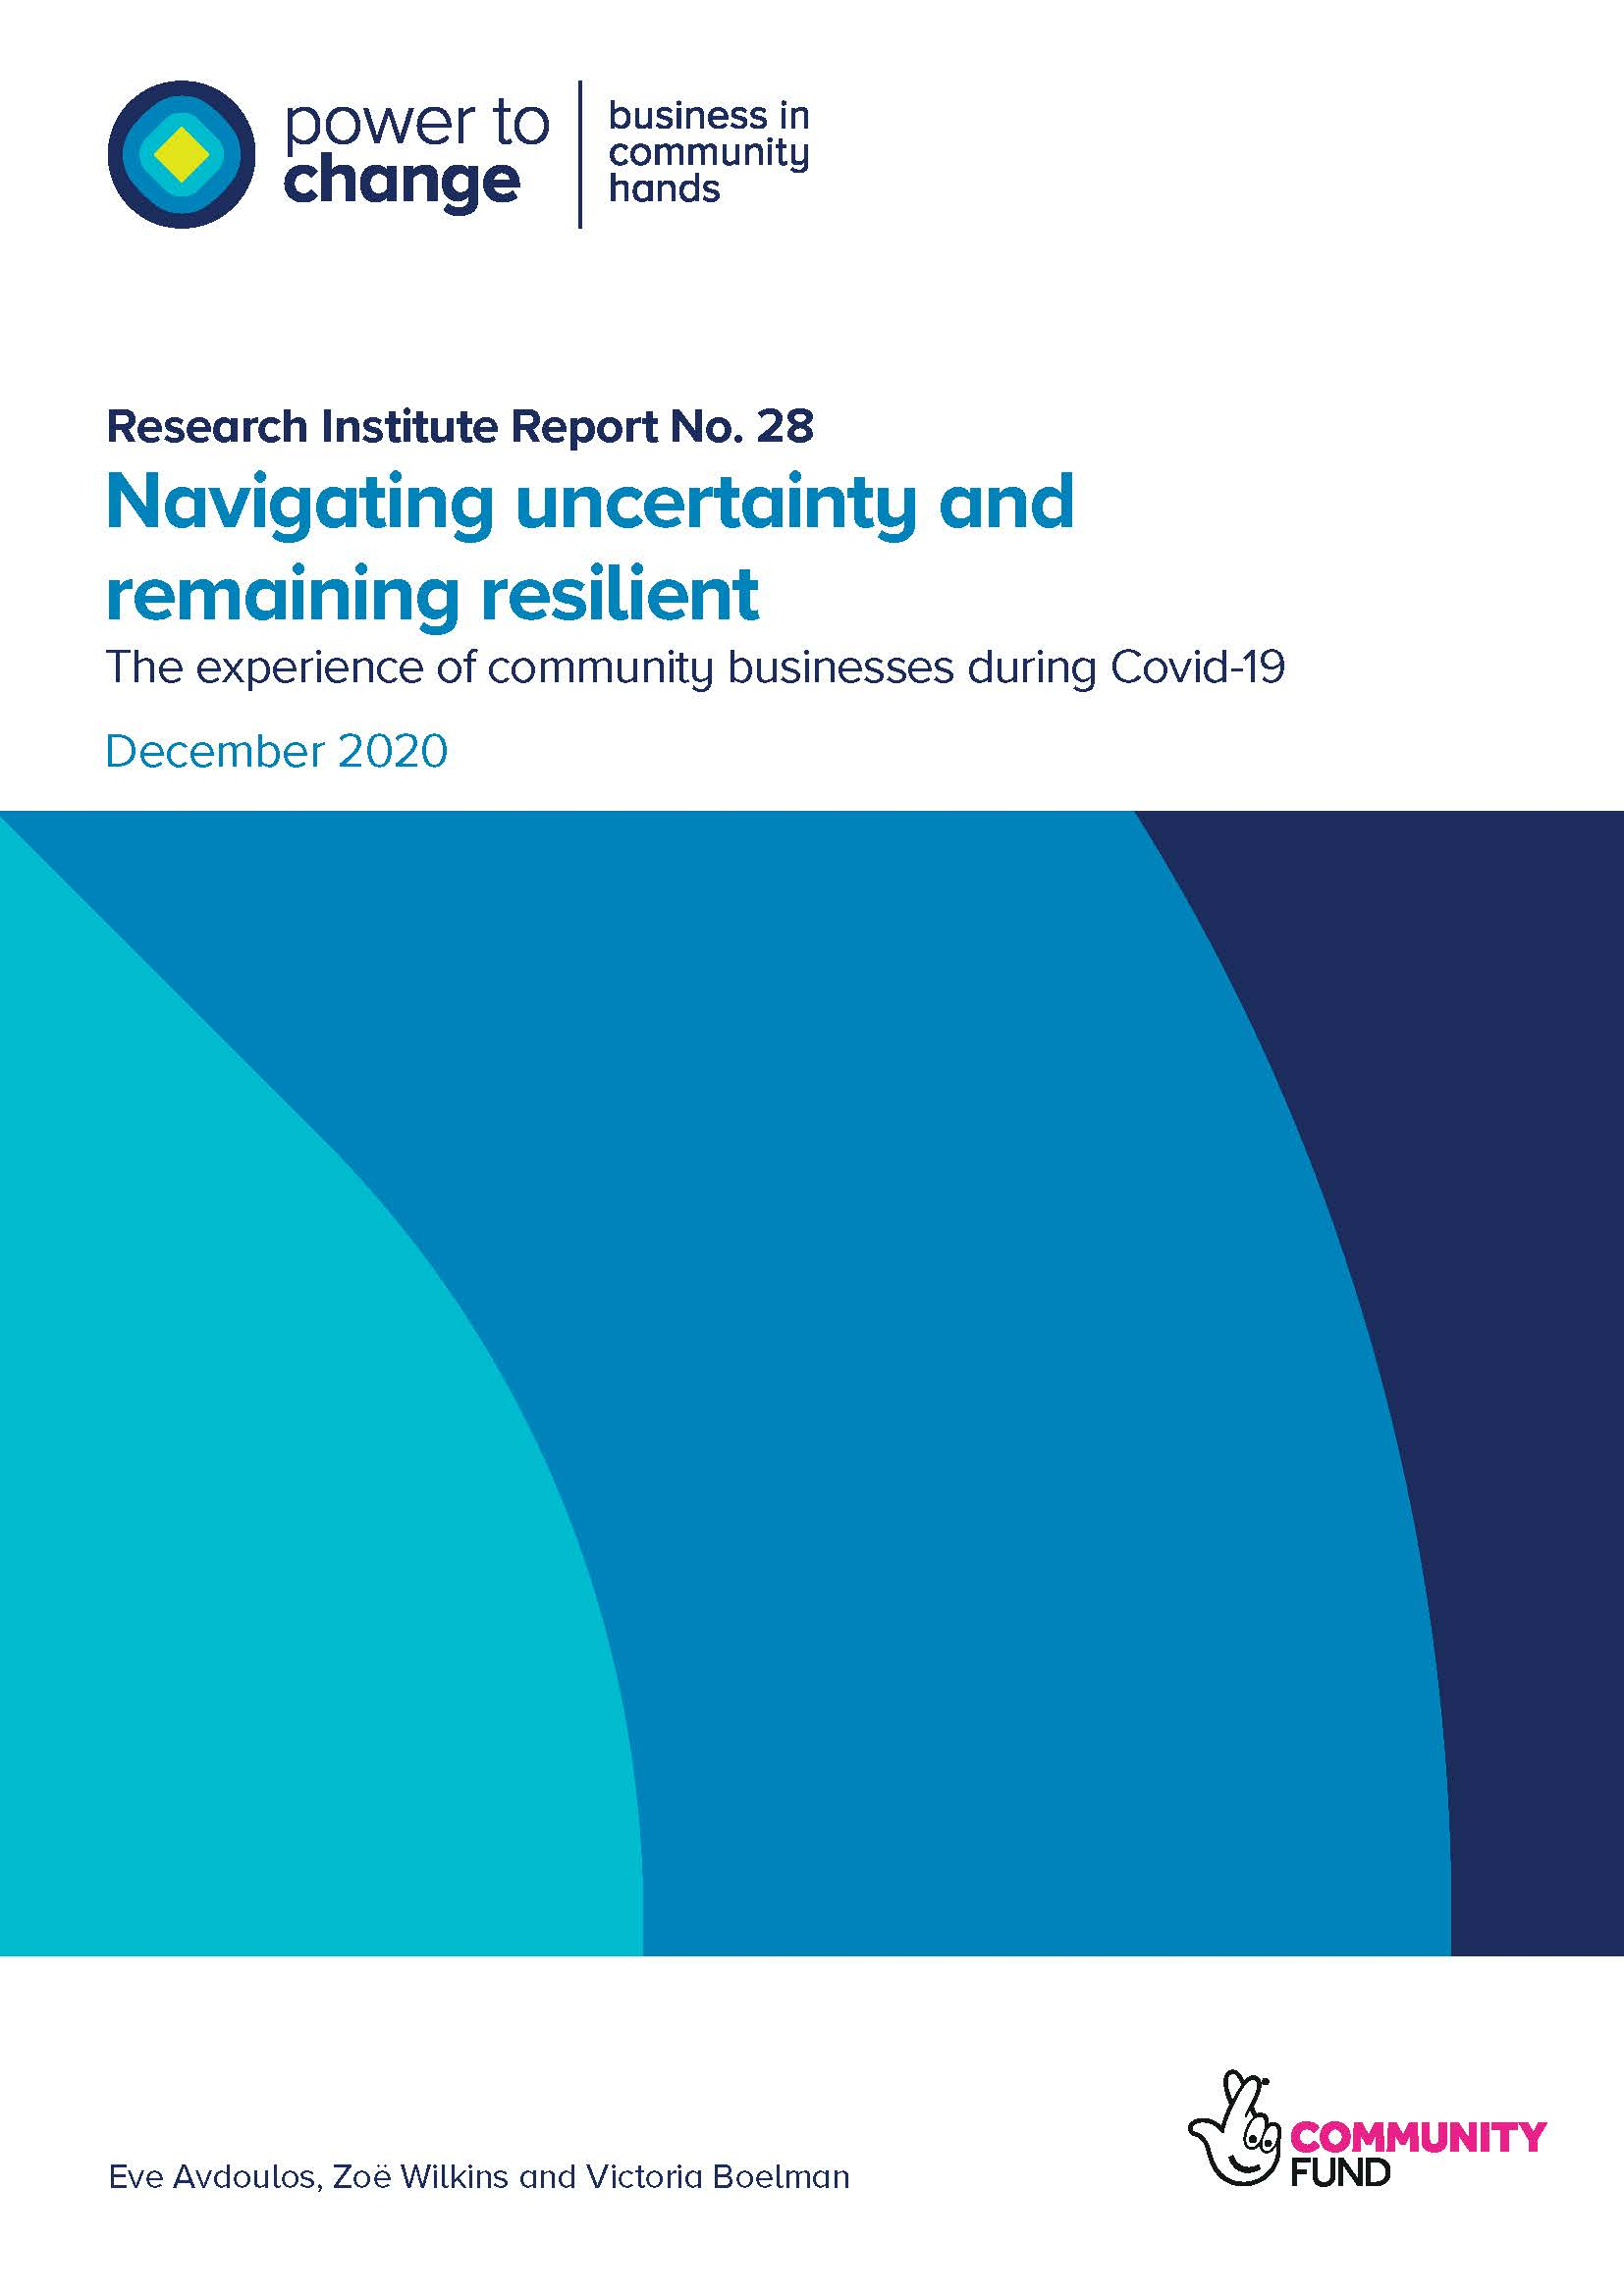 Navigating uncertainty and remaining resilient: The experience of community businesses during Covid-19